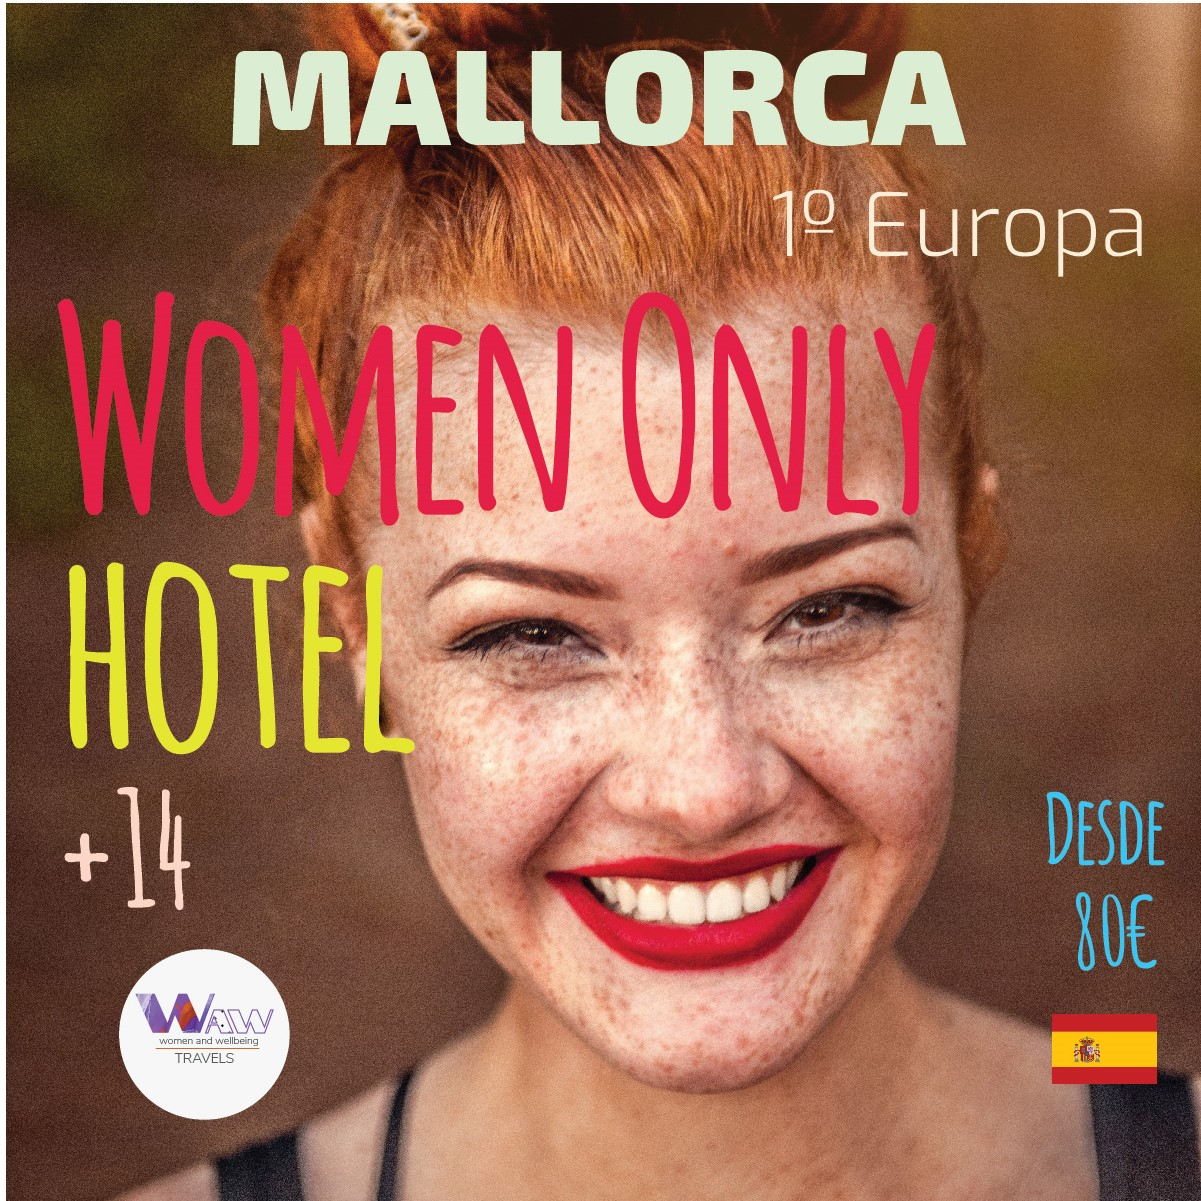 waw_travels_mallorca_woman_only_hotel_Esp